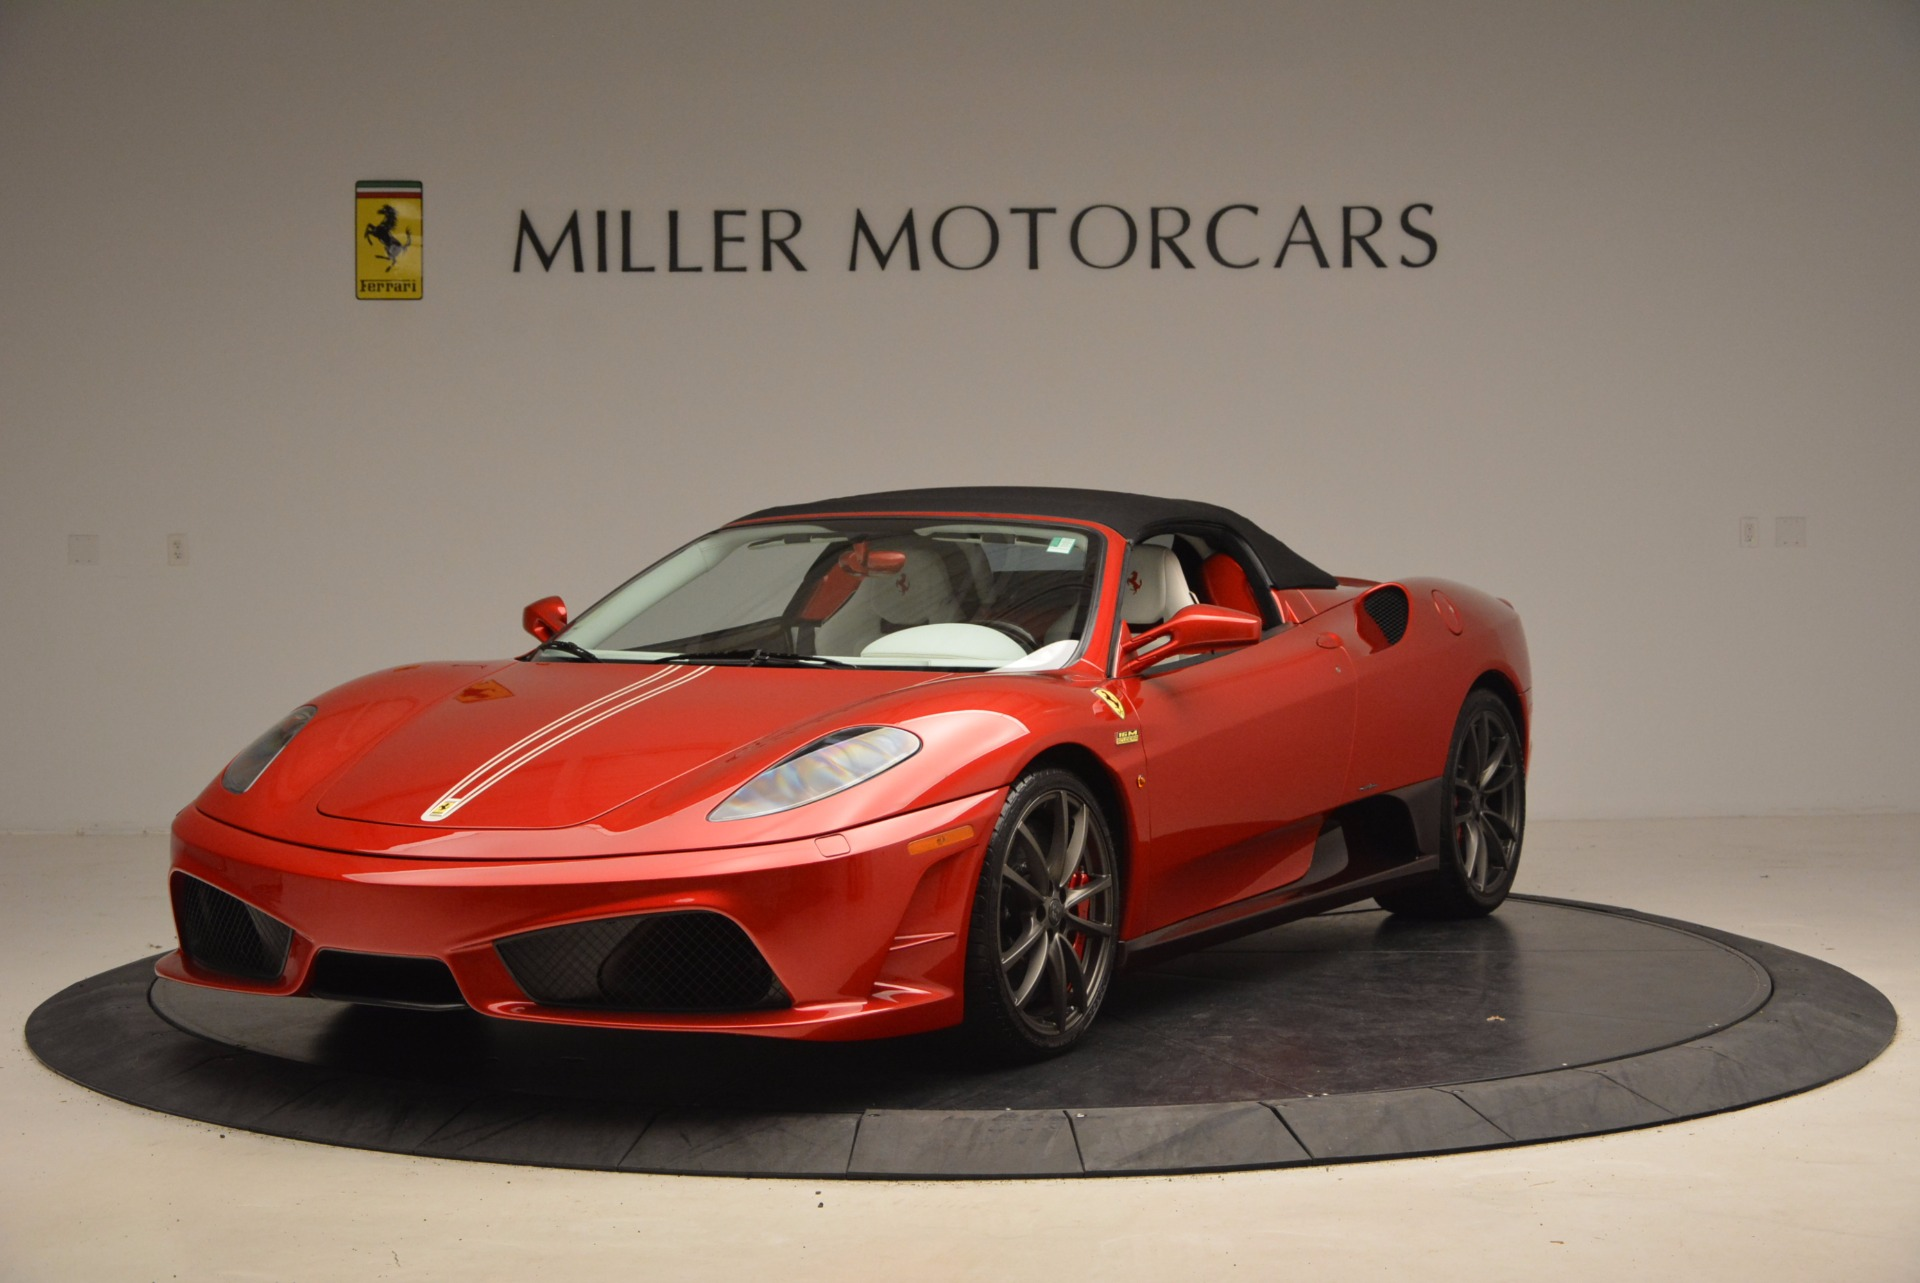 Used 2009 Ferrari F430 Scuderia 16M For Sale In Westport, CT 1398_p13